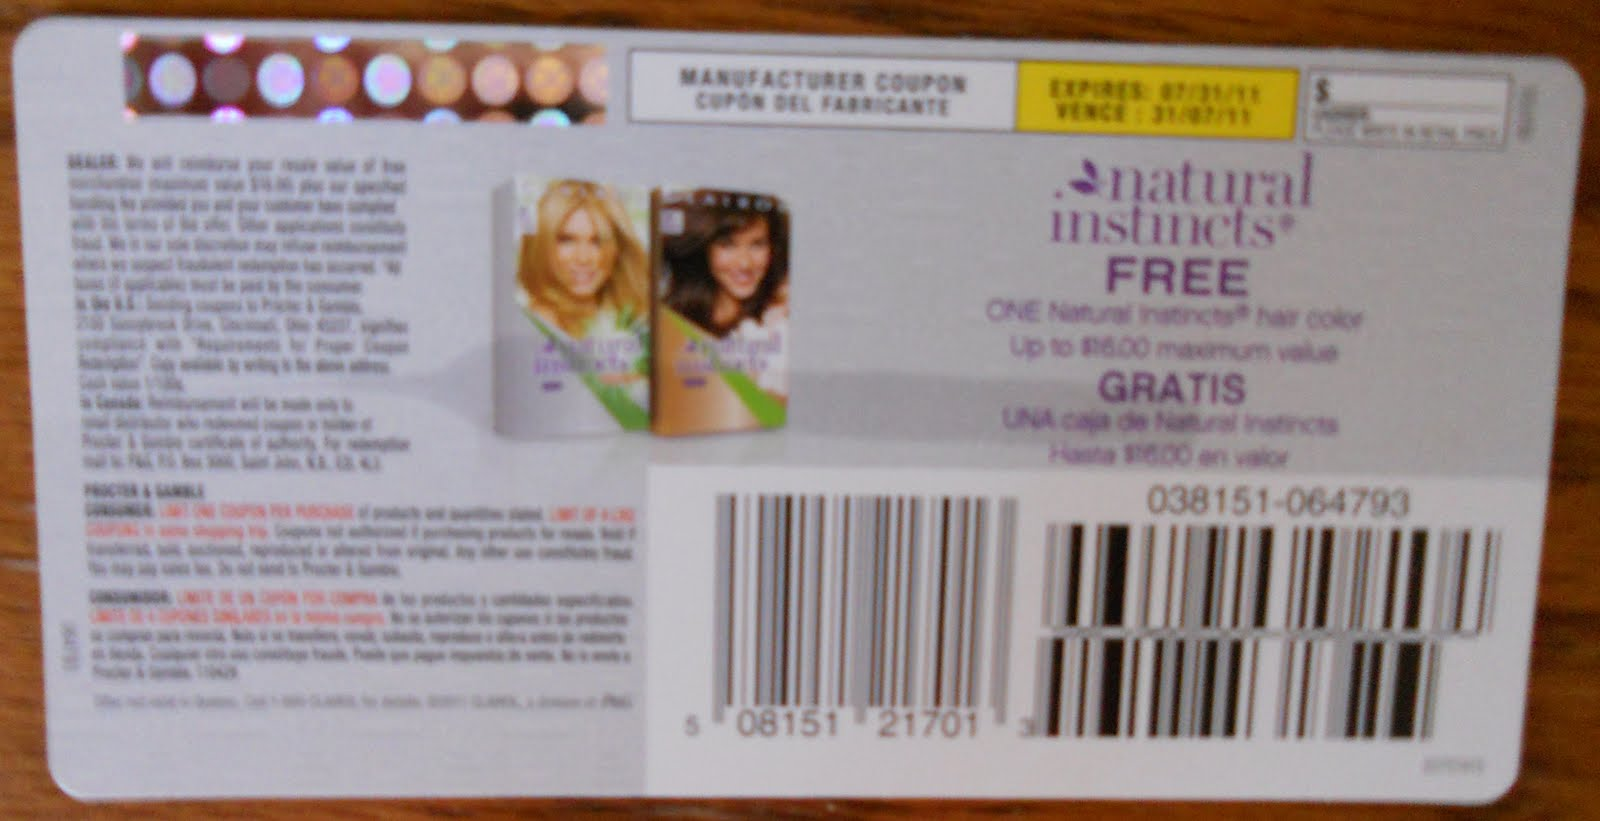 Buy 1 – Clairol Natural Instincts Hair Color $, sale price through 9/16 At Printable Coupons and Deals, we do our best to post all the printable coupons, digital coupons and deals we can find that will save you money. We are a family of 6, so every dollar has to stretch.